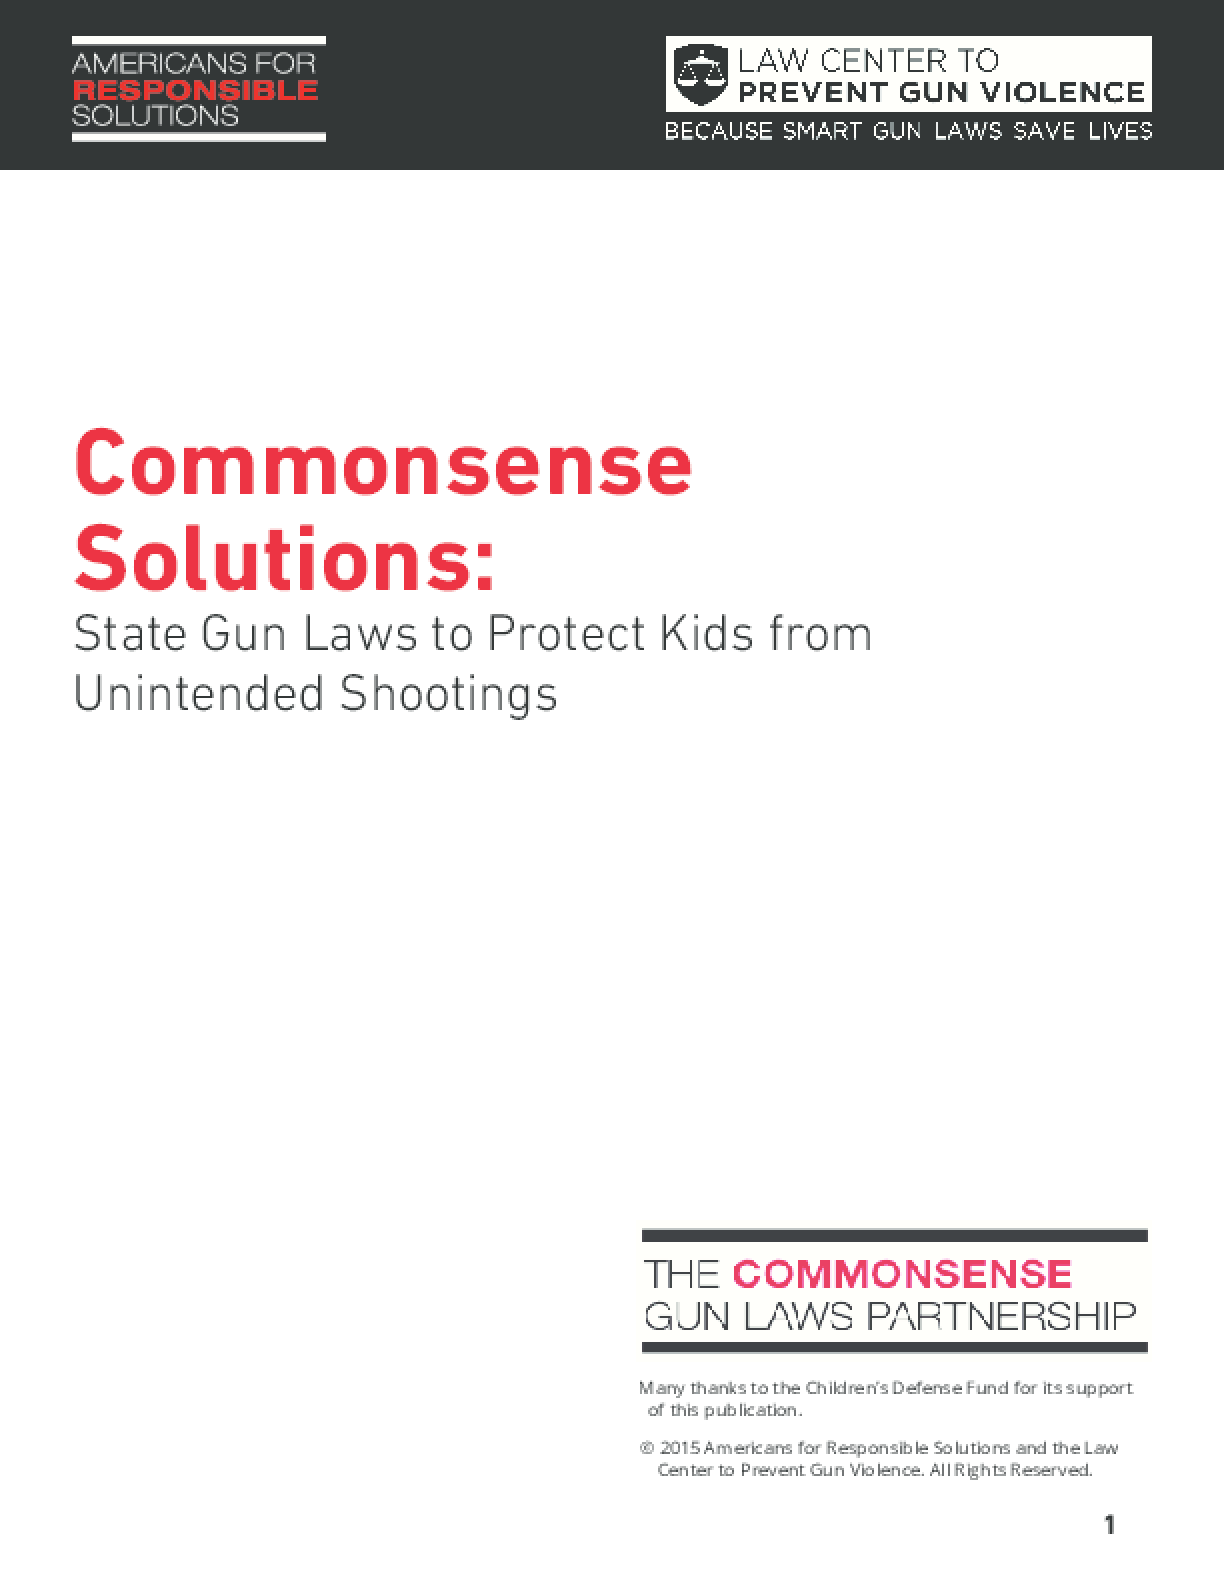 Commonsense Solutions: State Gun Laws to Protect Kids from Unintended Shootings